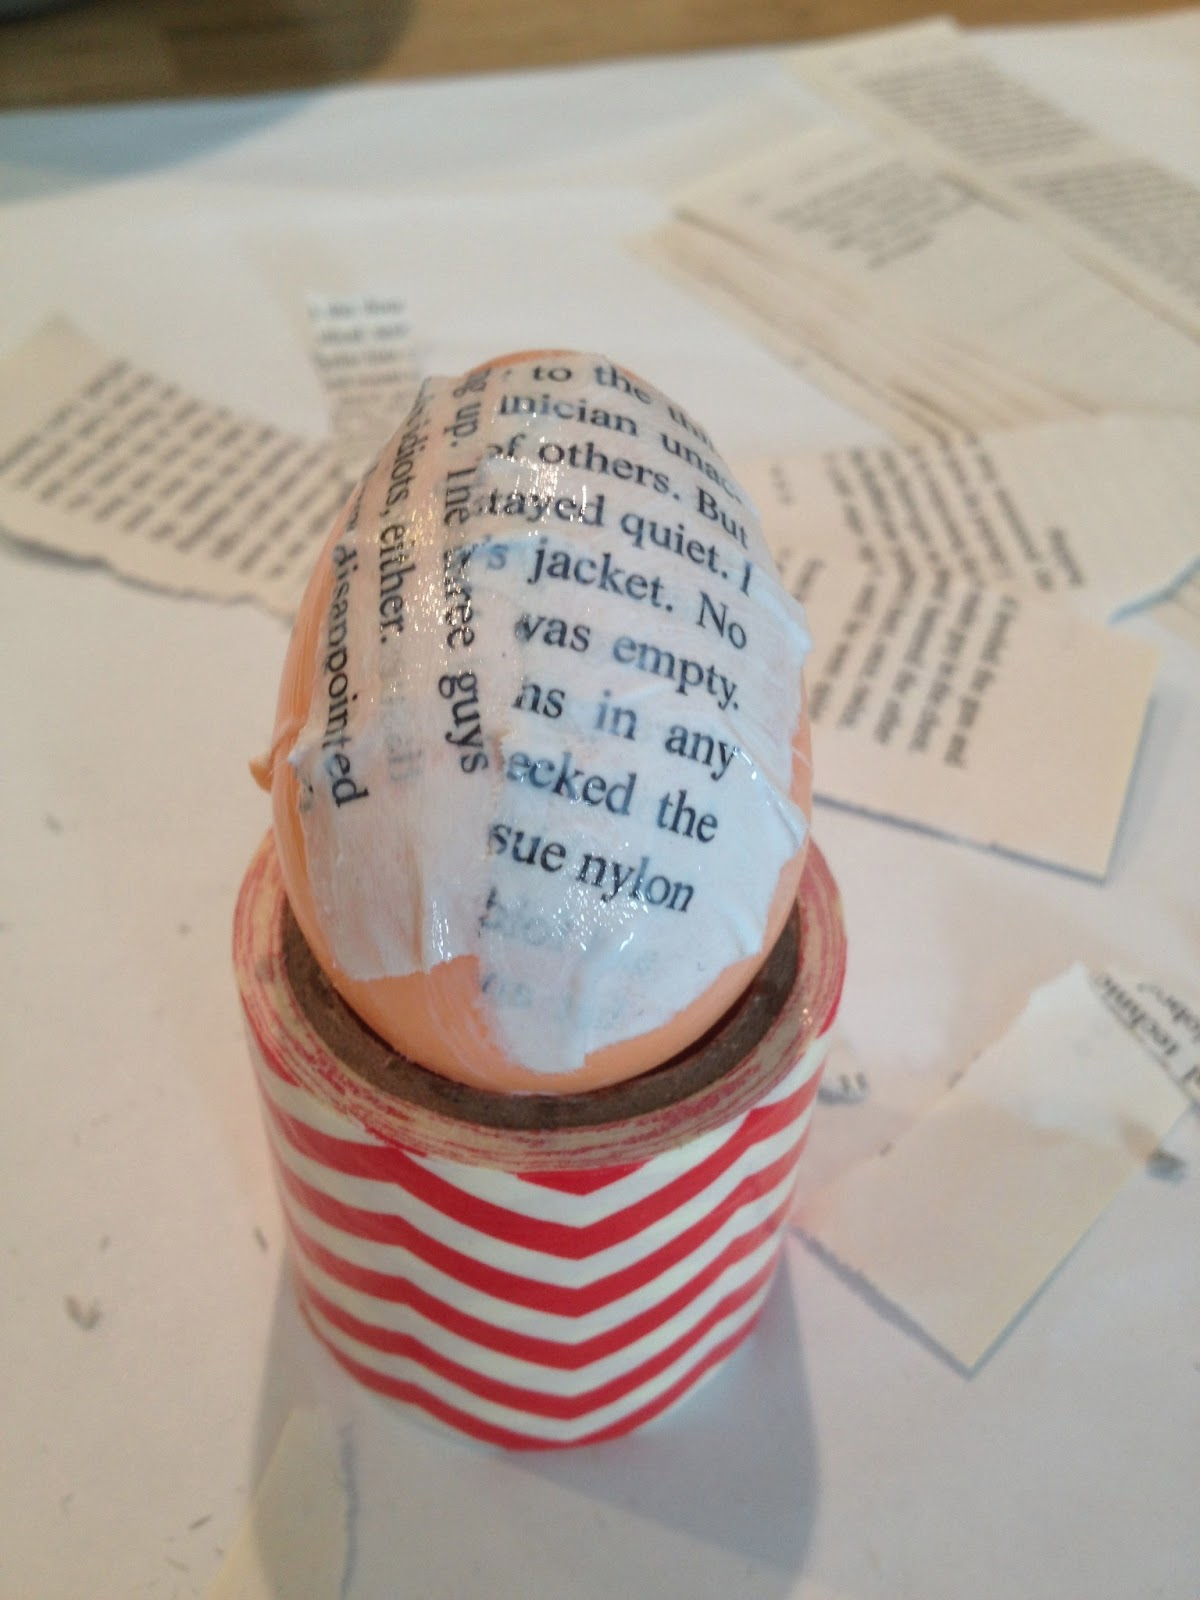 In process decoupage of applying pieces of book pages to a plastic easter egg